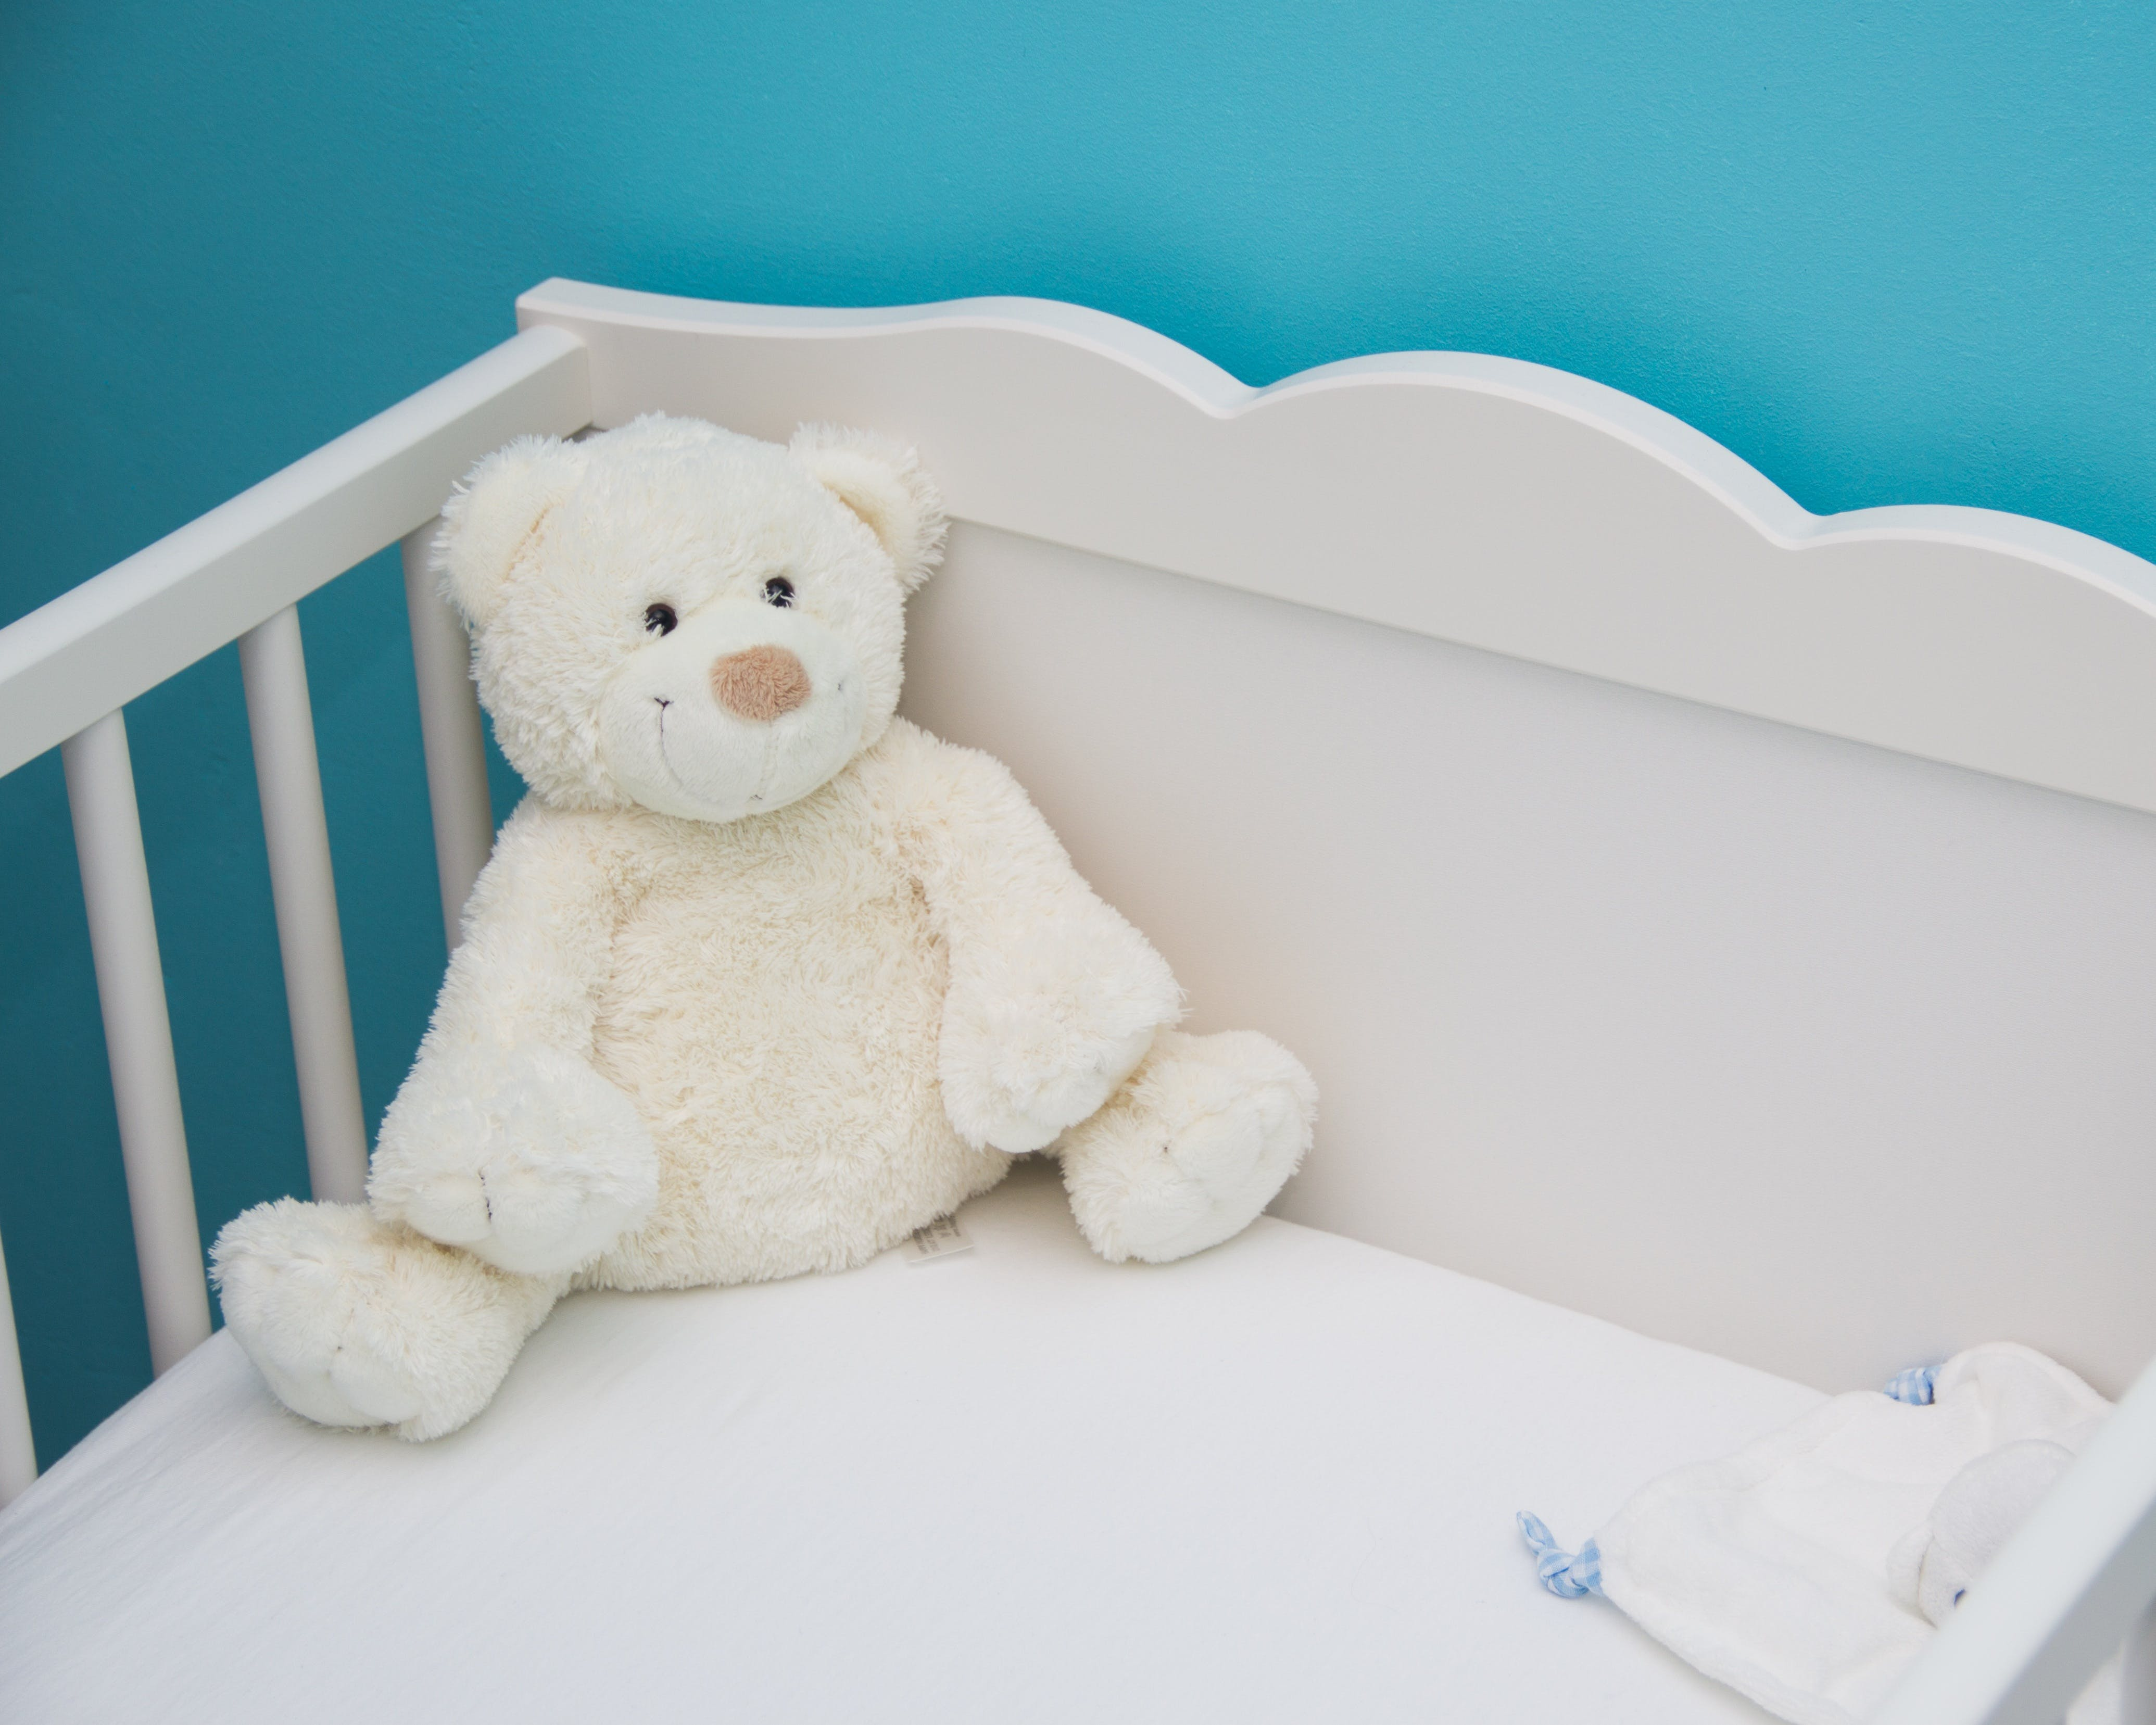 baby, bed, blue